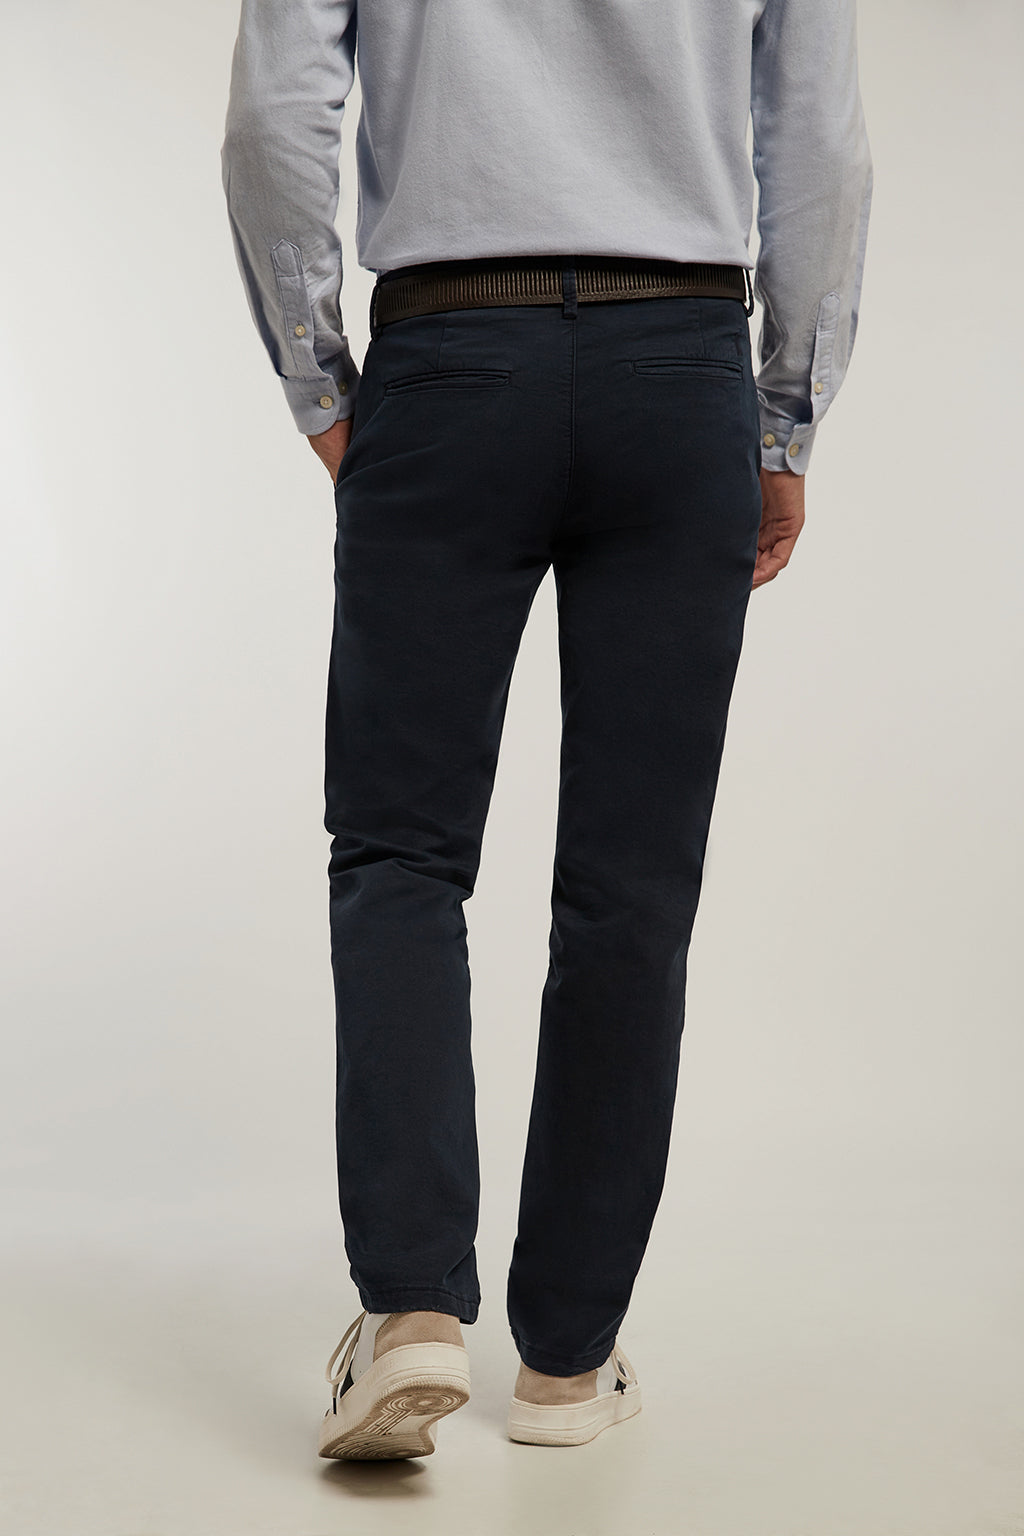 Pantalón chino azul marino custom fit